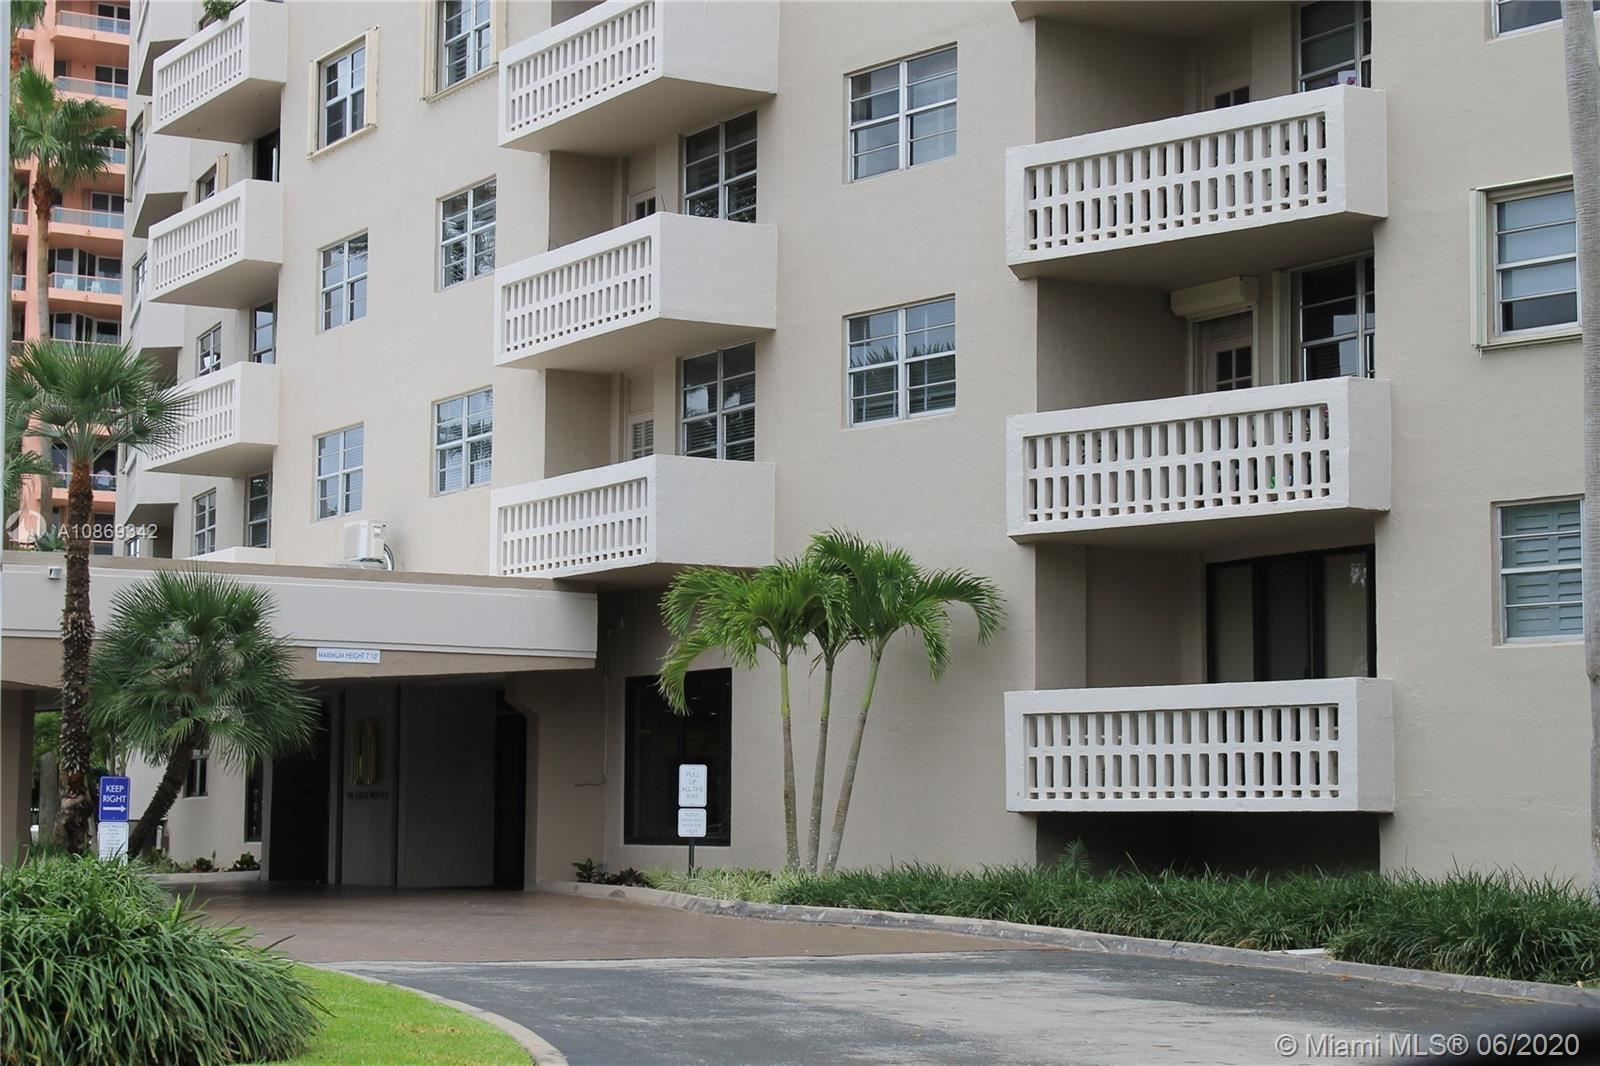 90 Edgewater Dr #211, Coral Gables, FL 33133 - #: A10869342